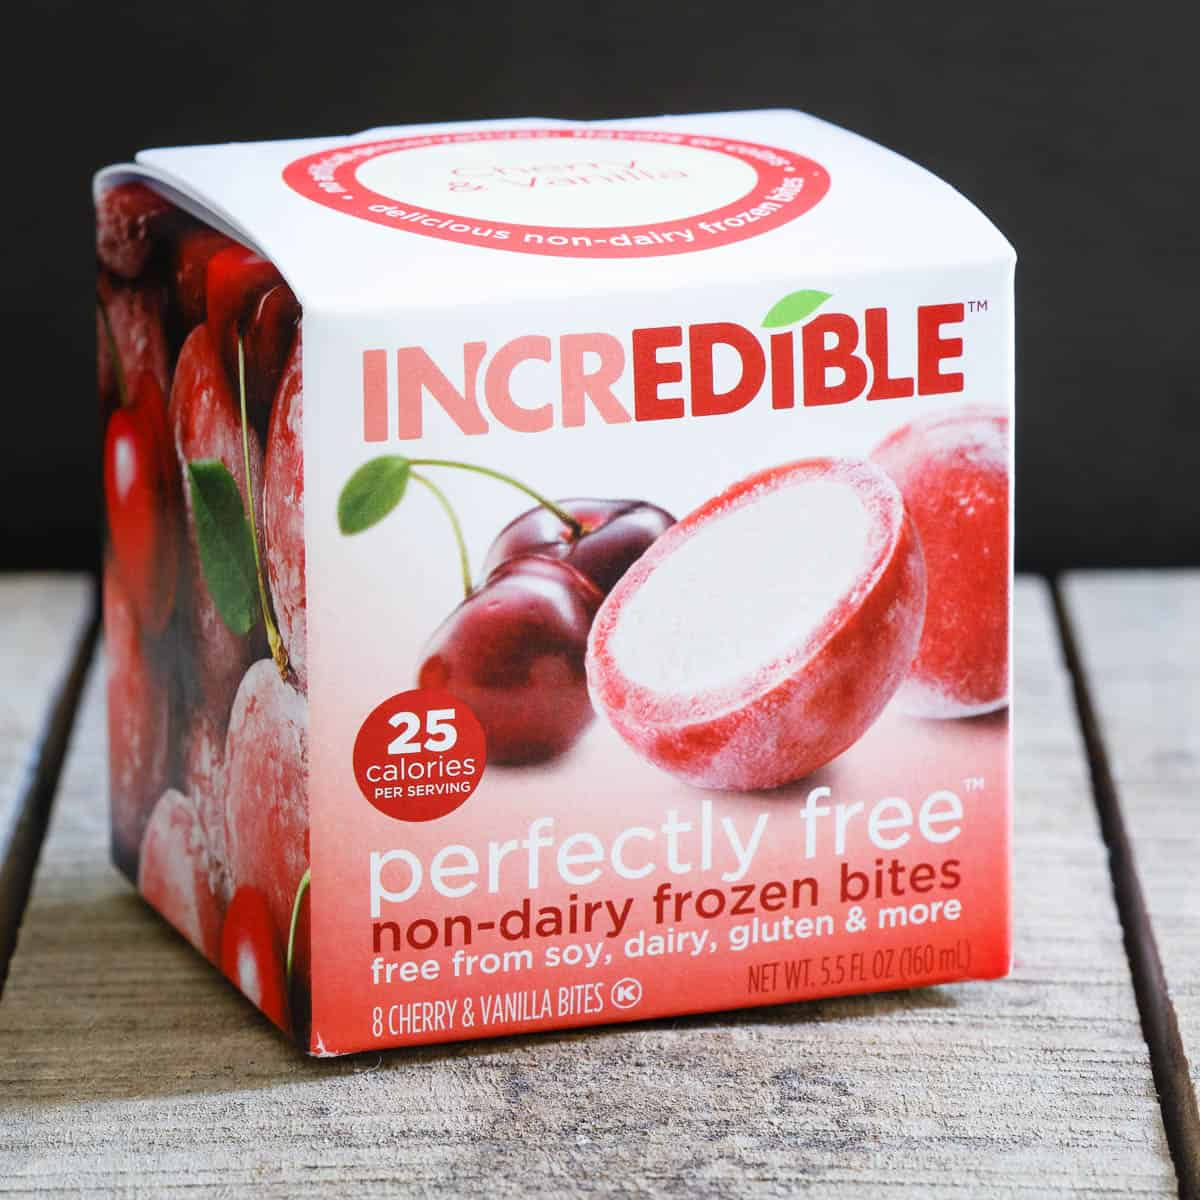 Perfectly Free non-dairy cherry frozen bites